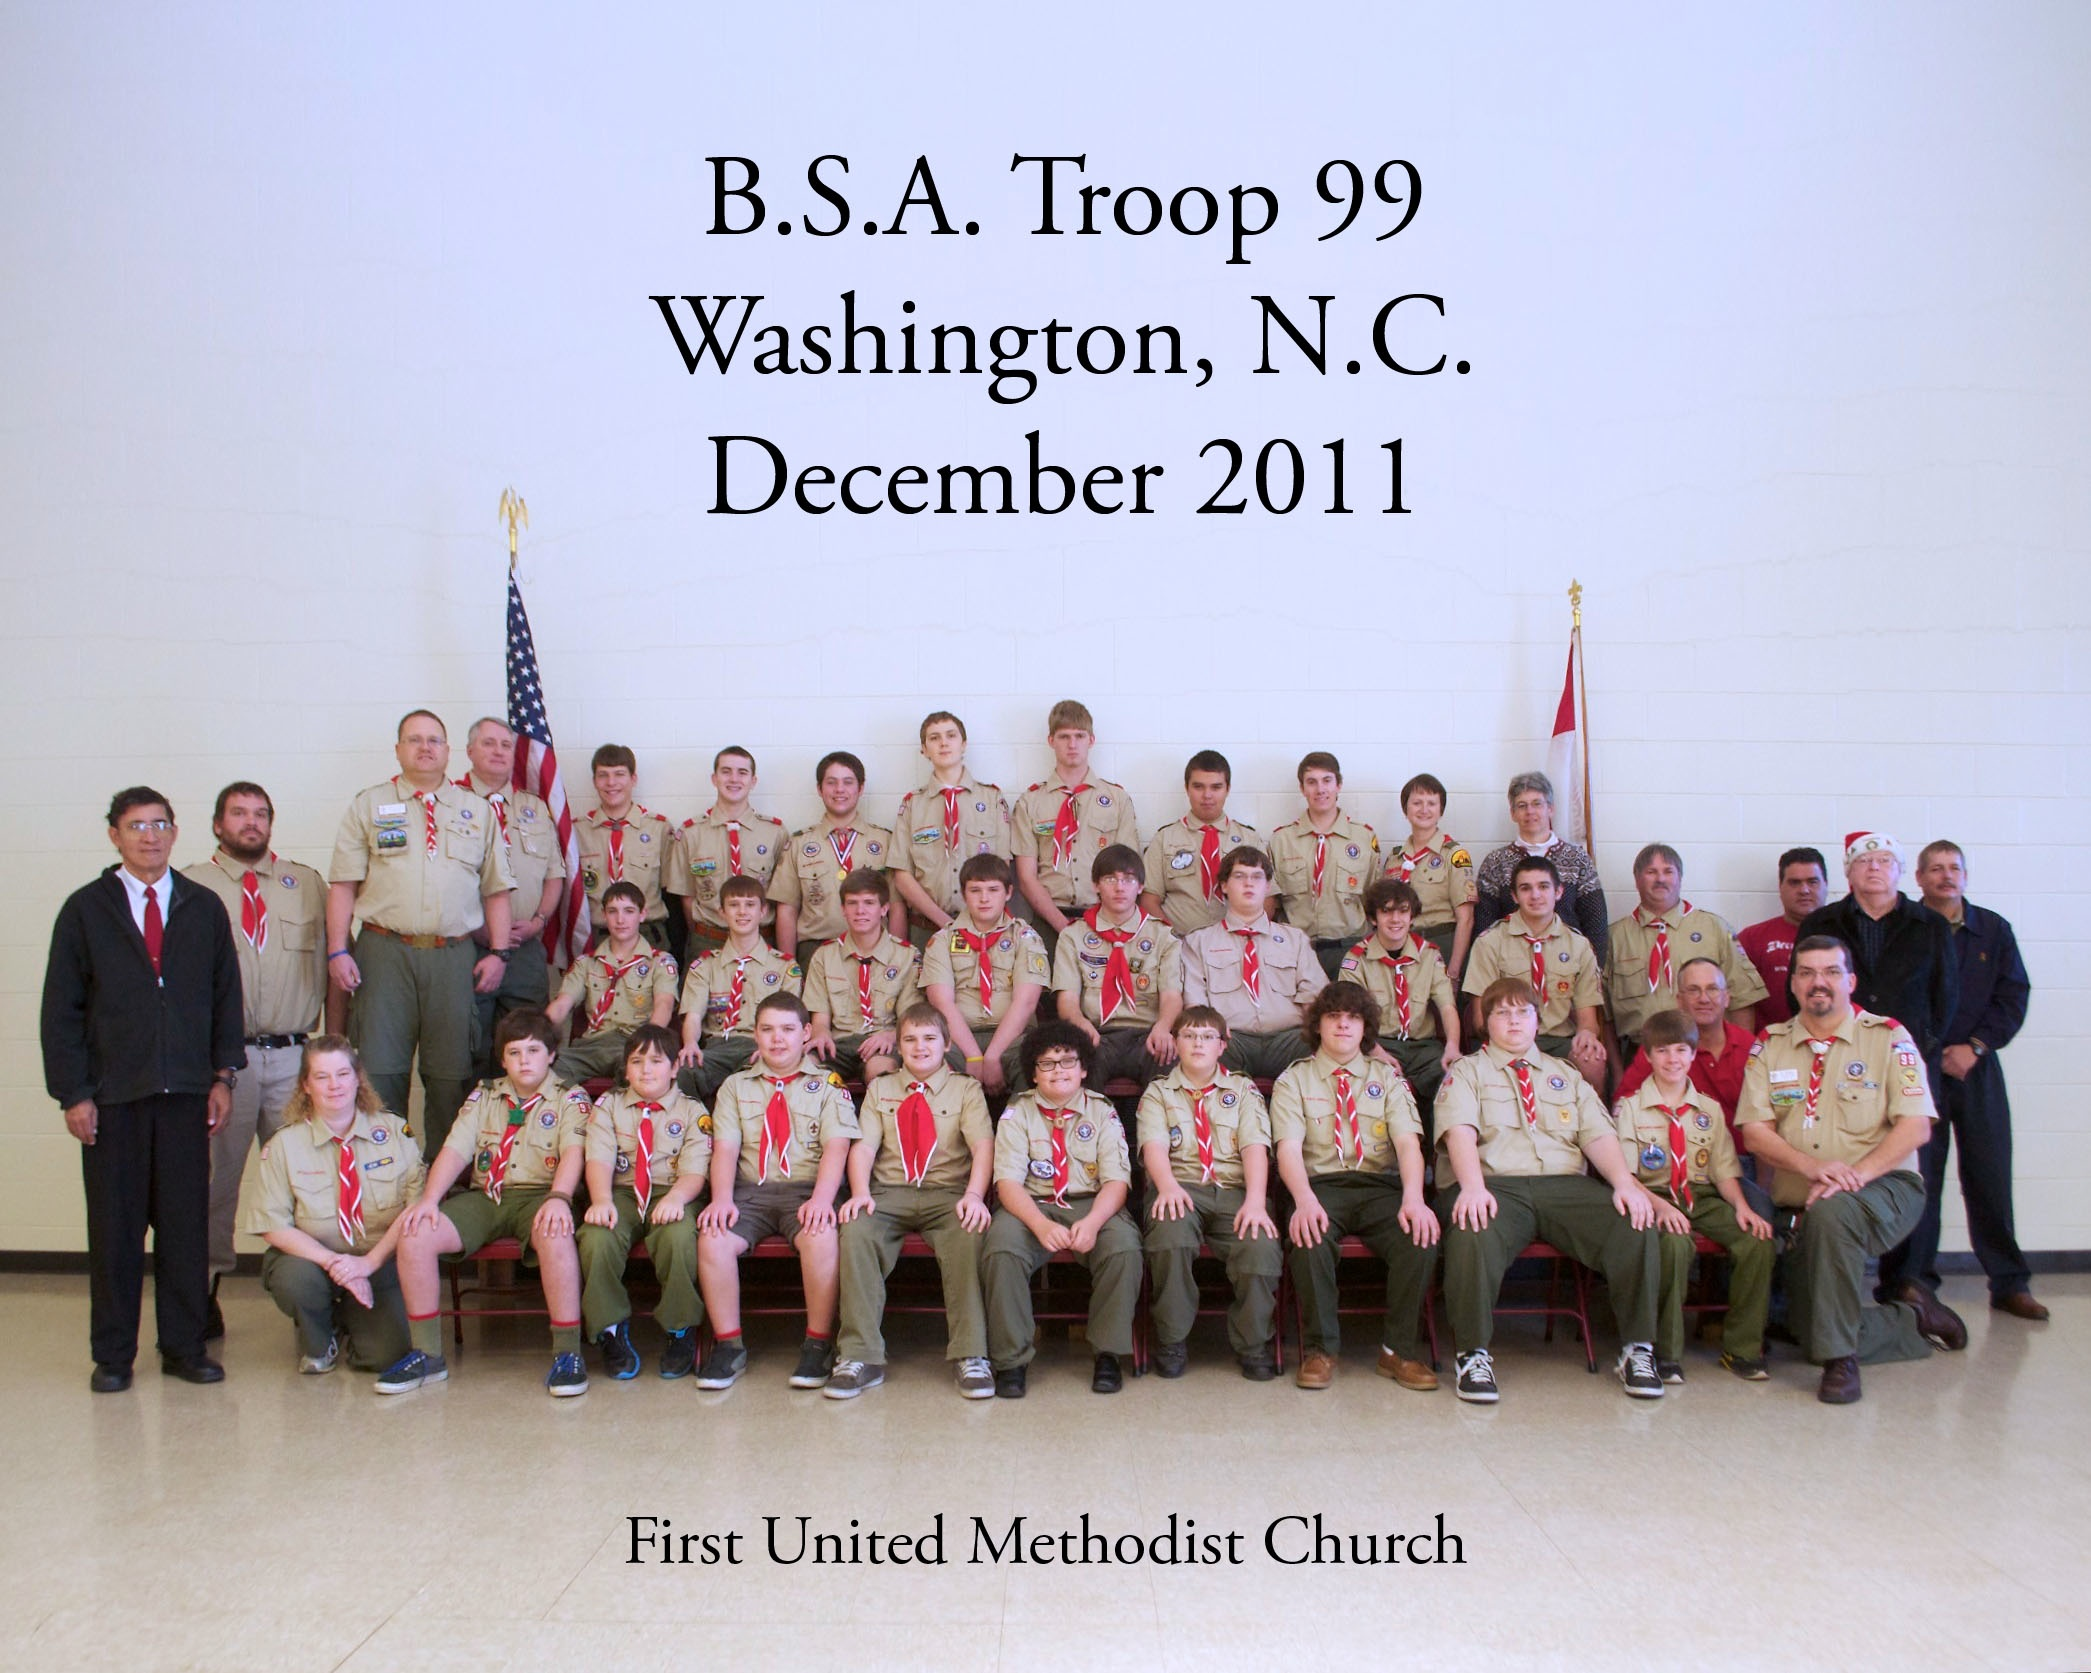 BSA Troop 99 - Washington, NC - December 2011